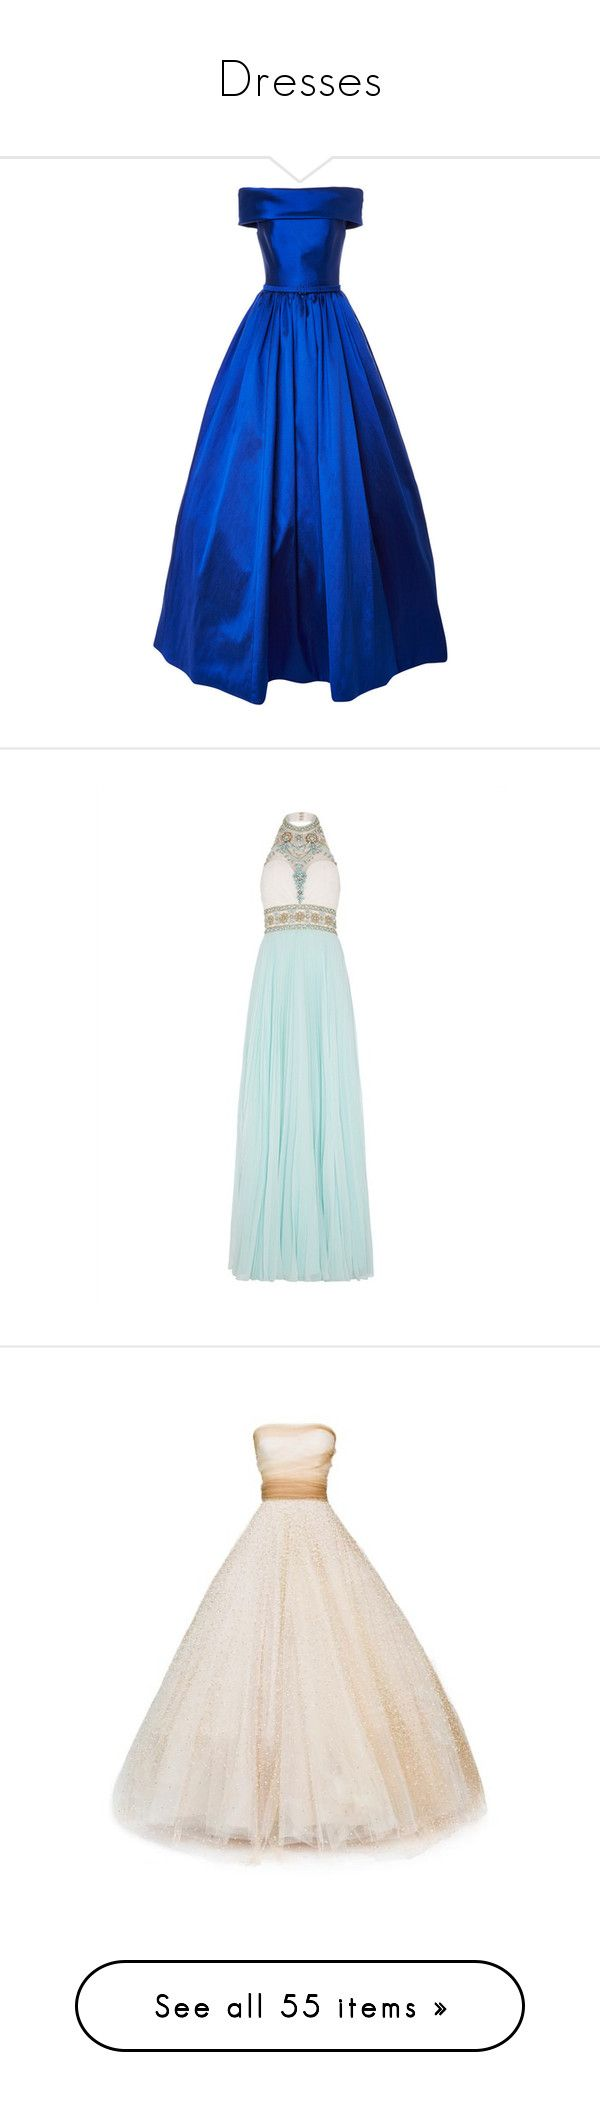 """""""Dresses"""" by anagrace2018 ❤ liked on Polyvore featuring dresses, gowns, long dresses, blue evening gown, blue gown, off the shoulder dress, royal blue long dress, gown, turquoise gown and white gown"""